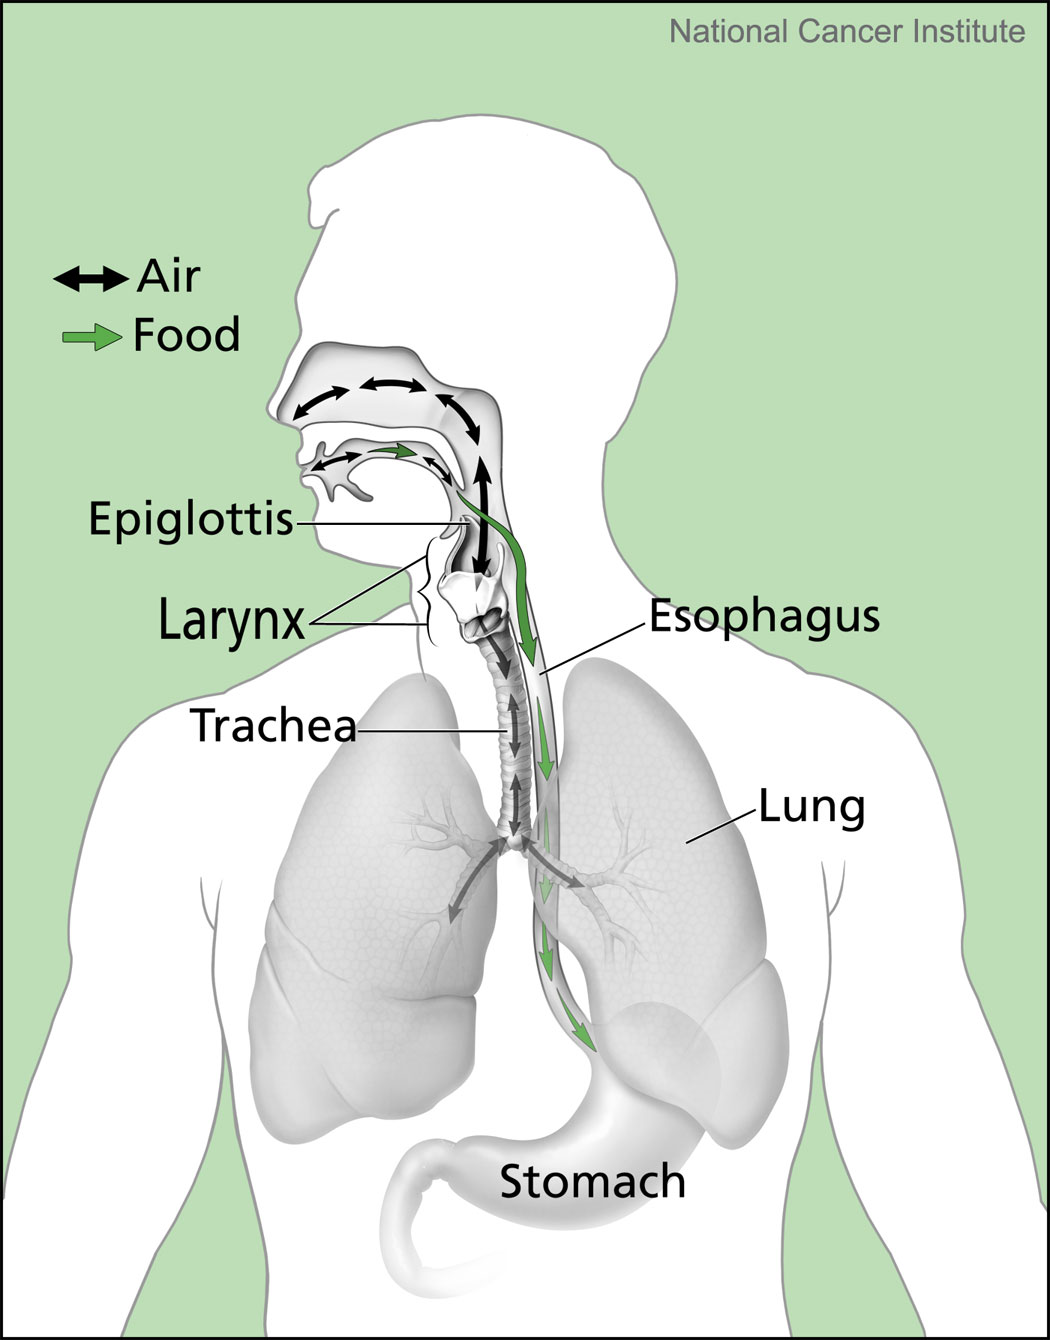 this diagram shows how the passages for air and food/liquid cross, increasing patient safety risks.